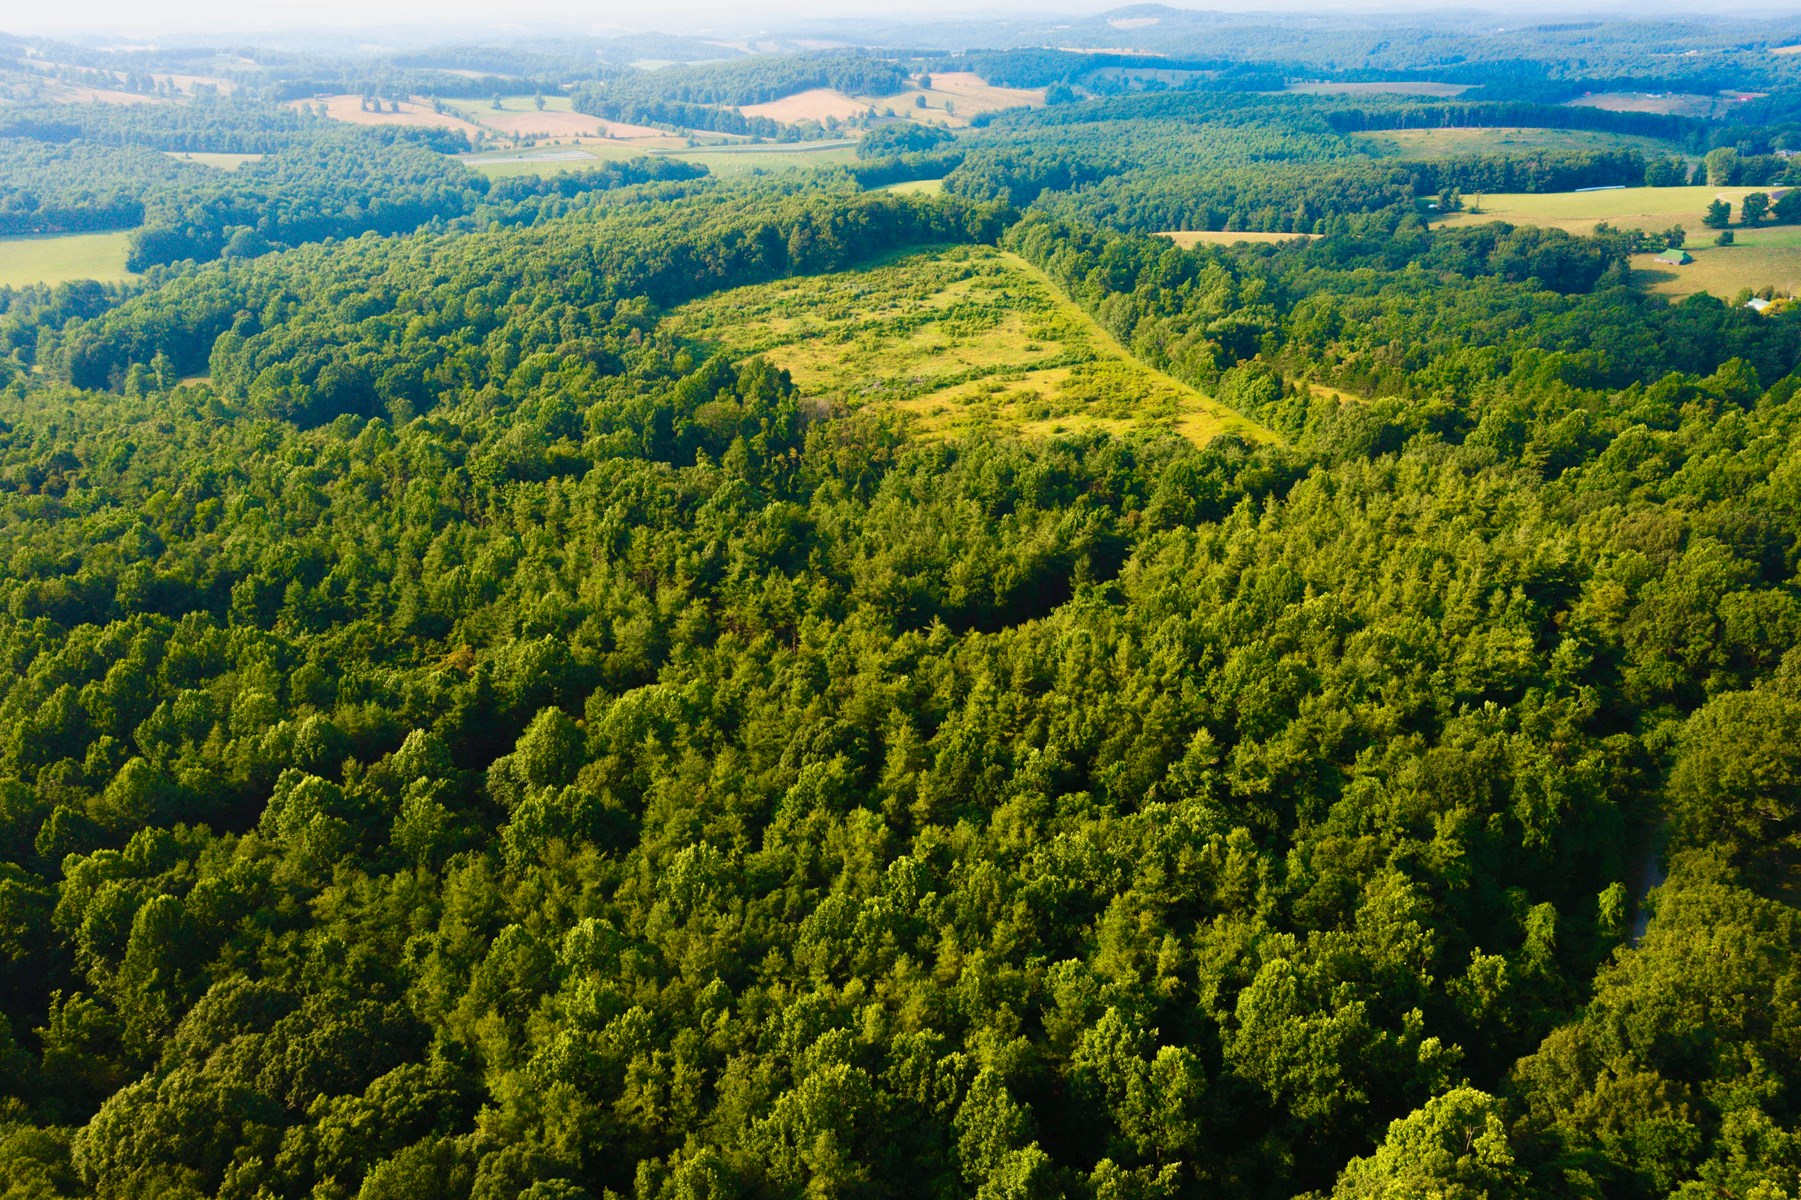 Wooded Property for Sale Near the Blue Ridge Parkway